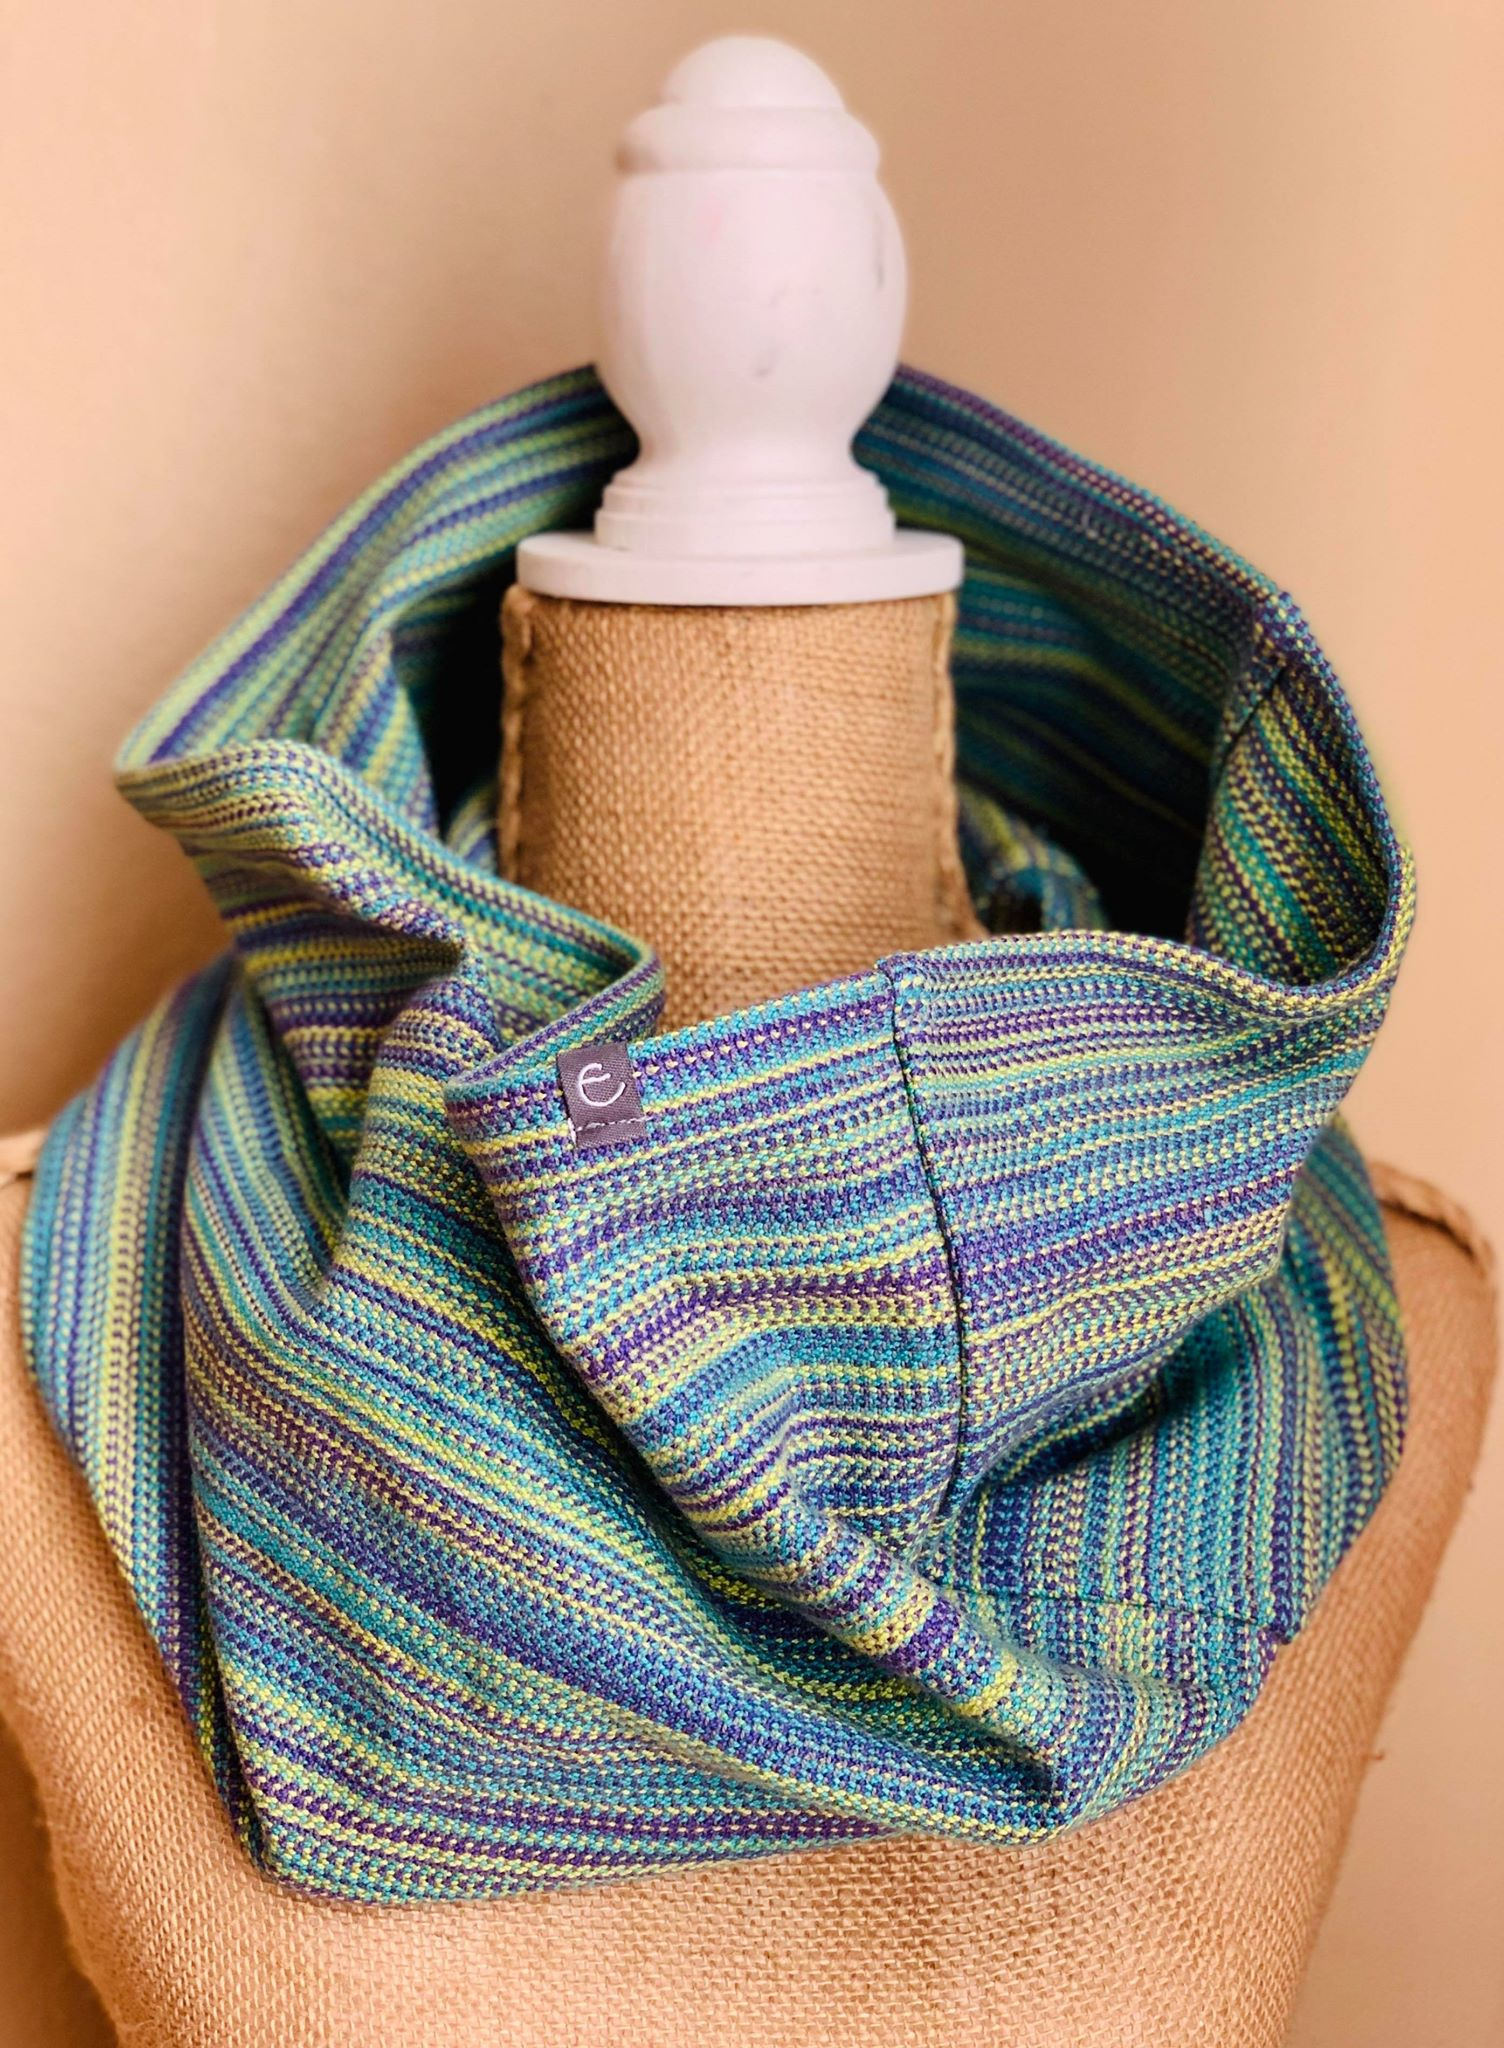 d2cf5bee9ab Reviews · Carrier Care · Tutorials · Register · Contact · Ethos Custom  Handwoven Order Details.   